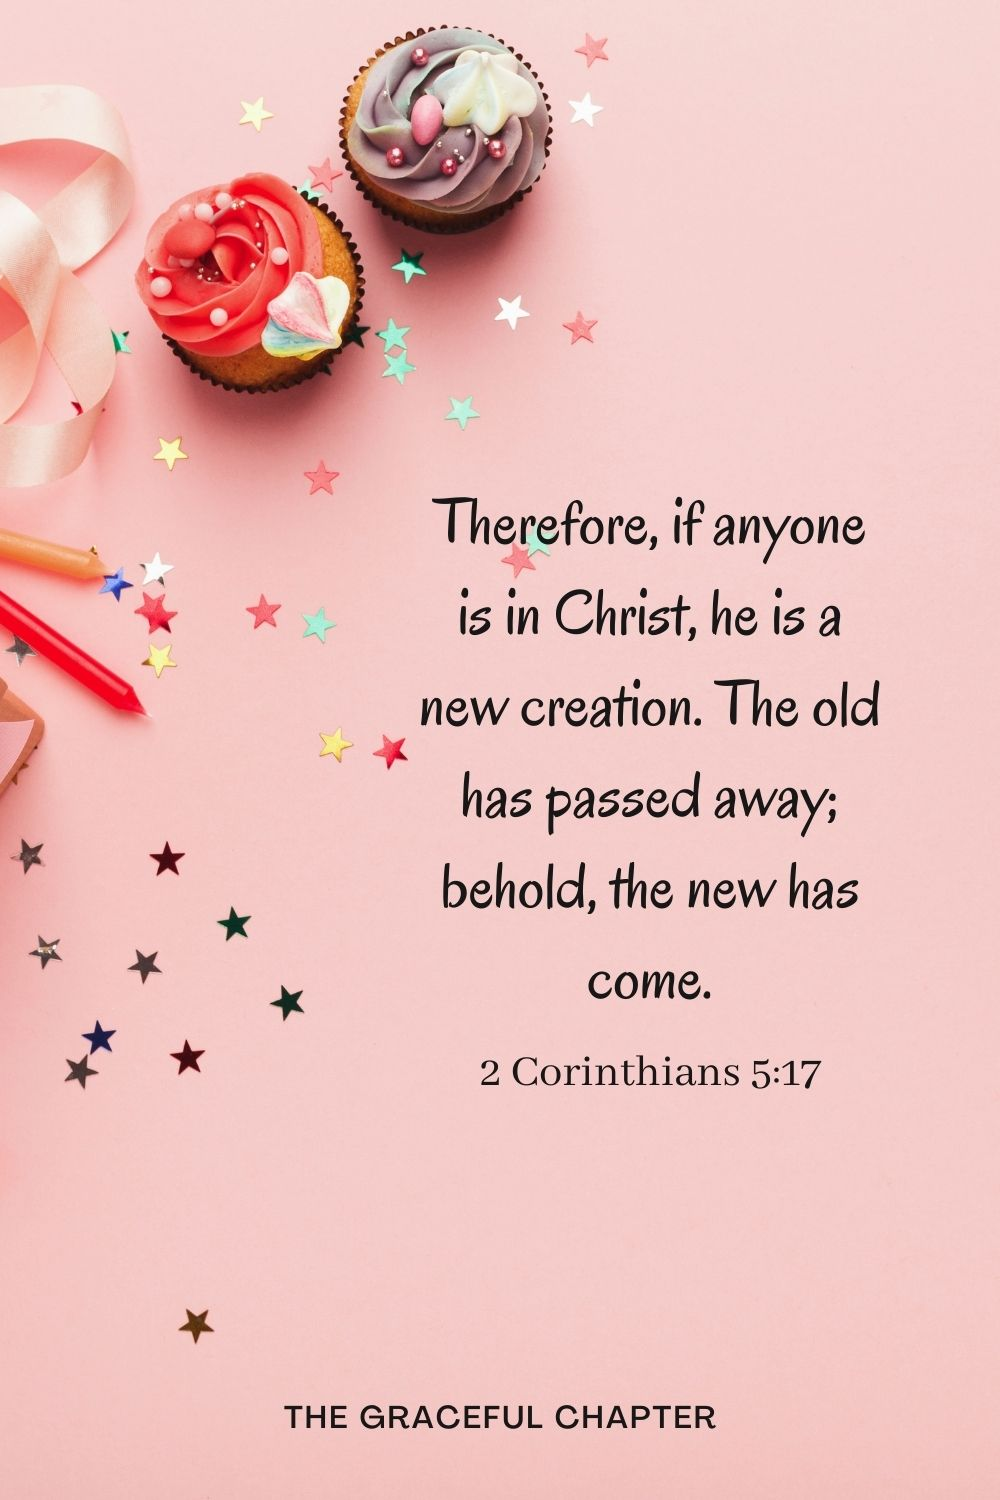 Therefore, if anyone is in Christ, he is a new creation. The old has passed away; behold, the new has come. Therefore, if anyone is in Christ, he is a new creation. The old has passed away; behold, the new has come. 2 Corinthians 5:17